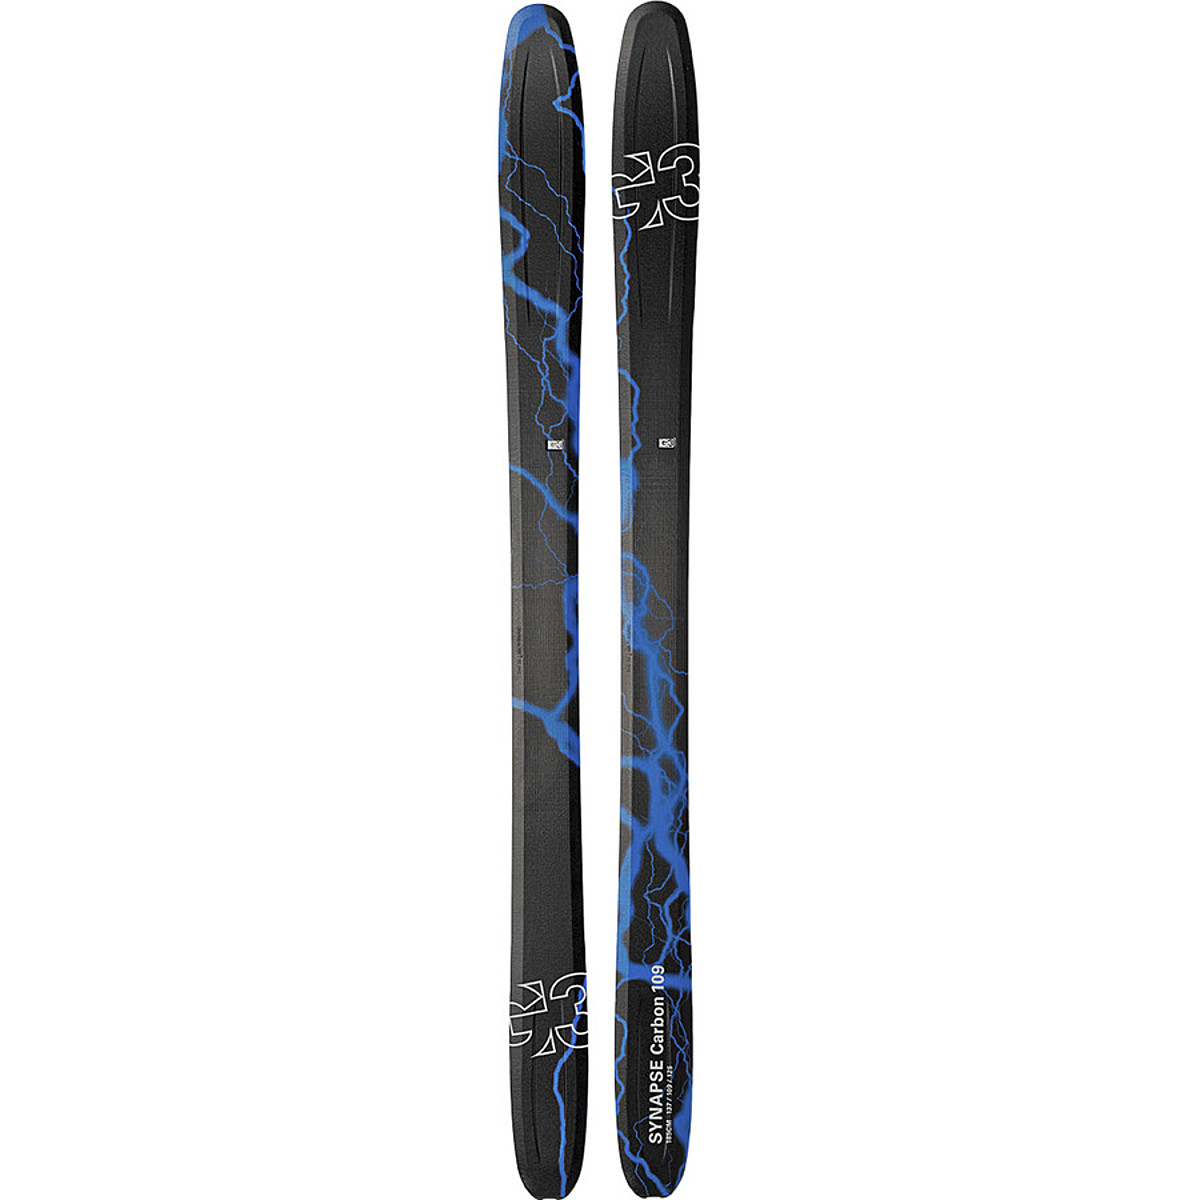 photo of a G3 ski/snowshoe product